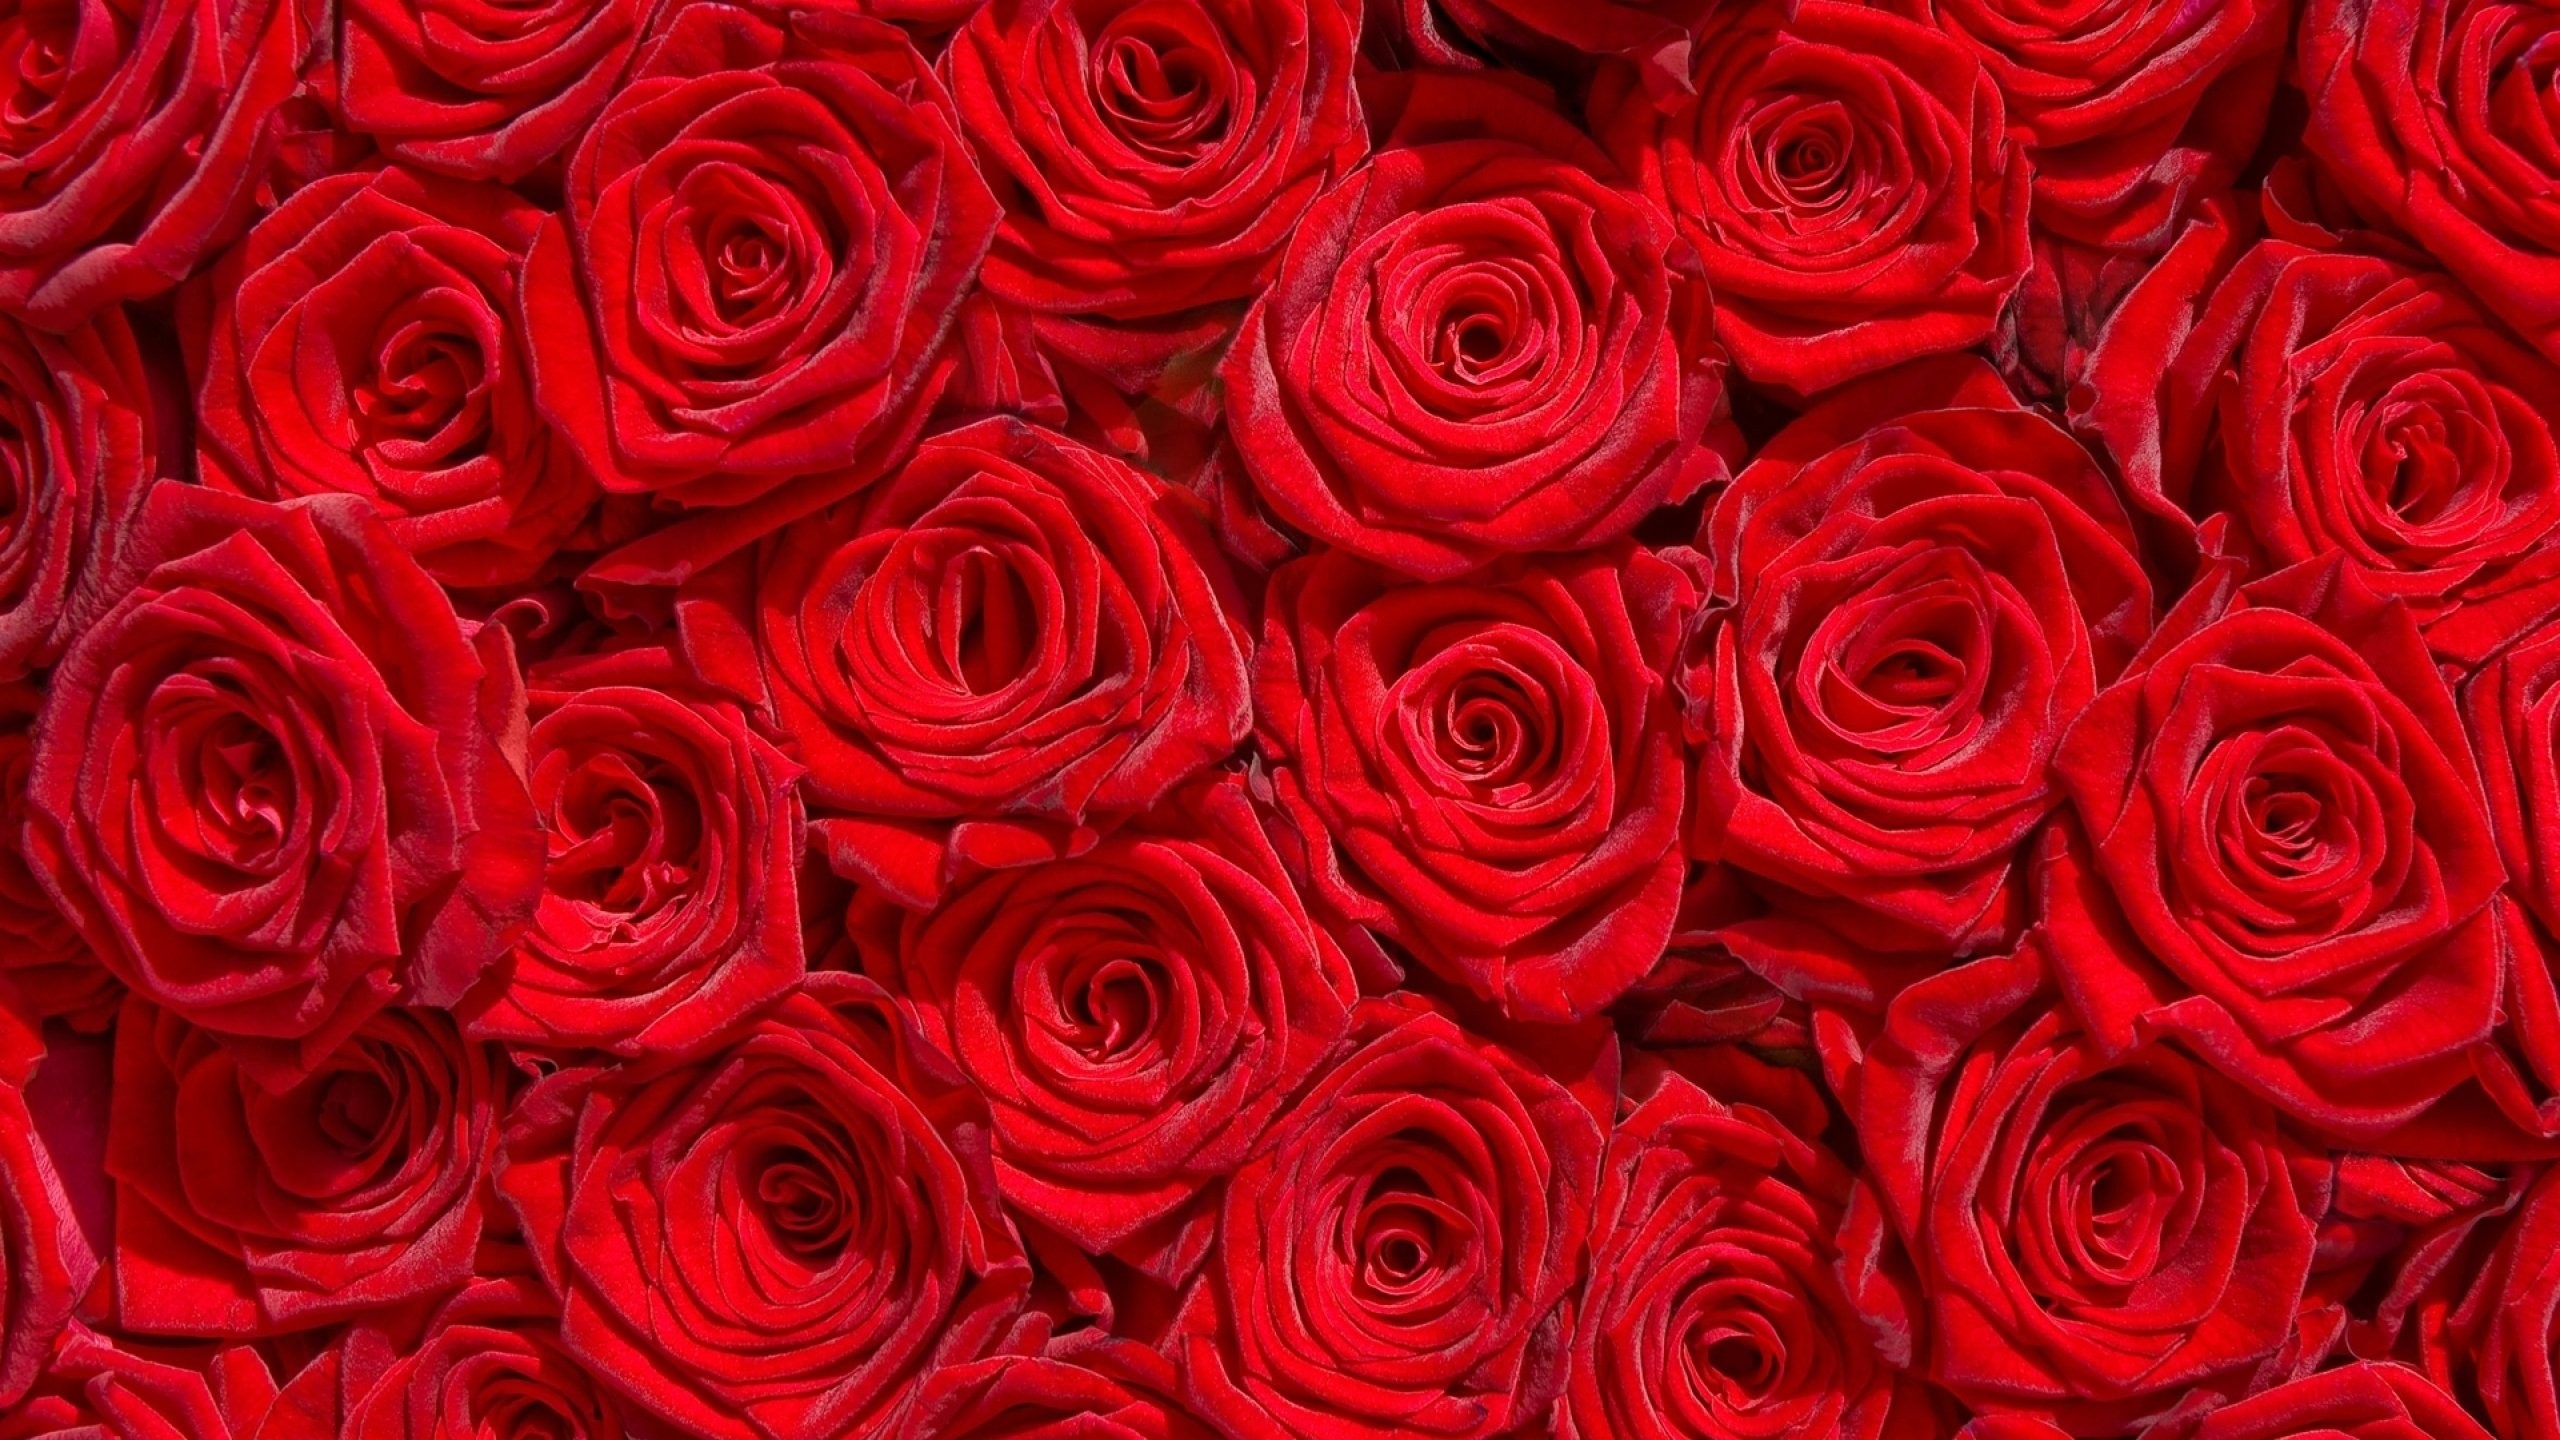 1920x1200 Rose Flower Wallpaper Desktop Background